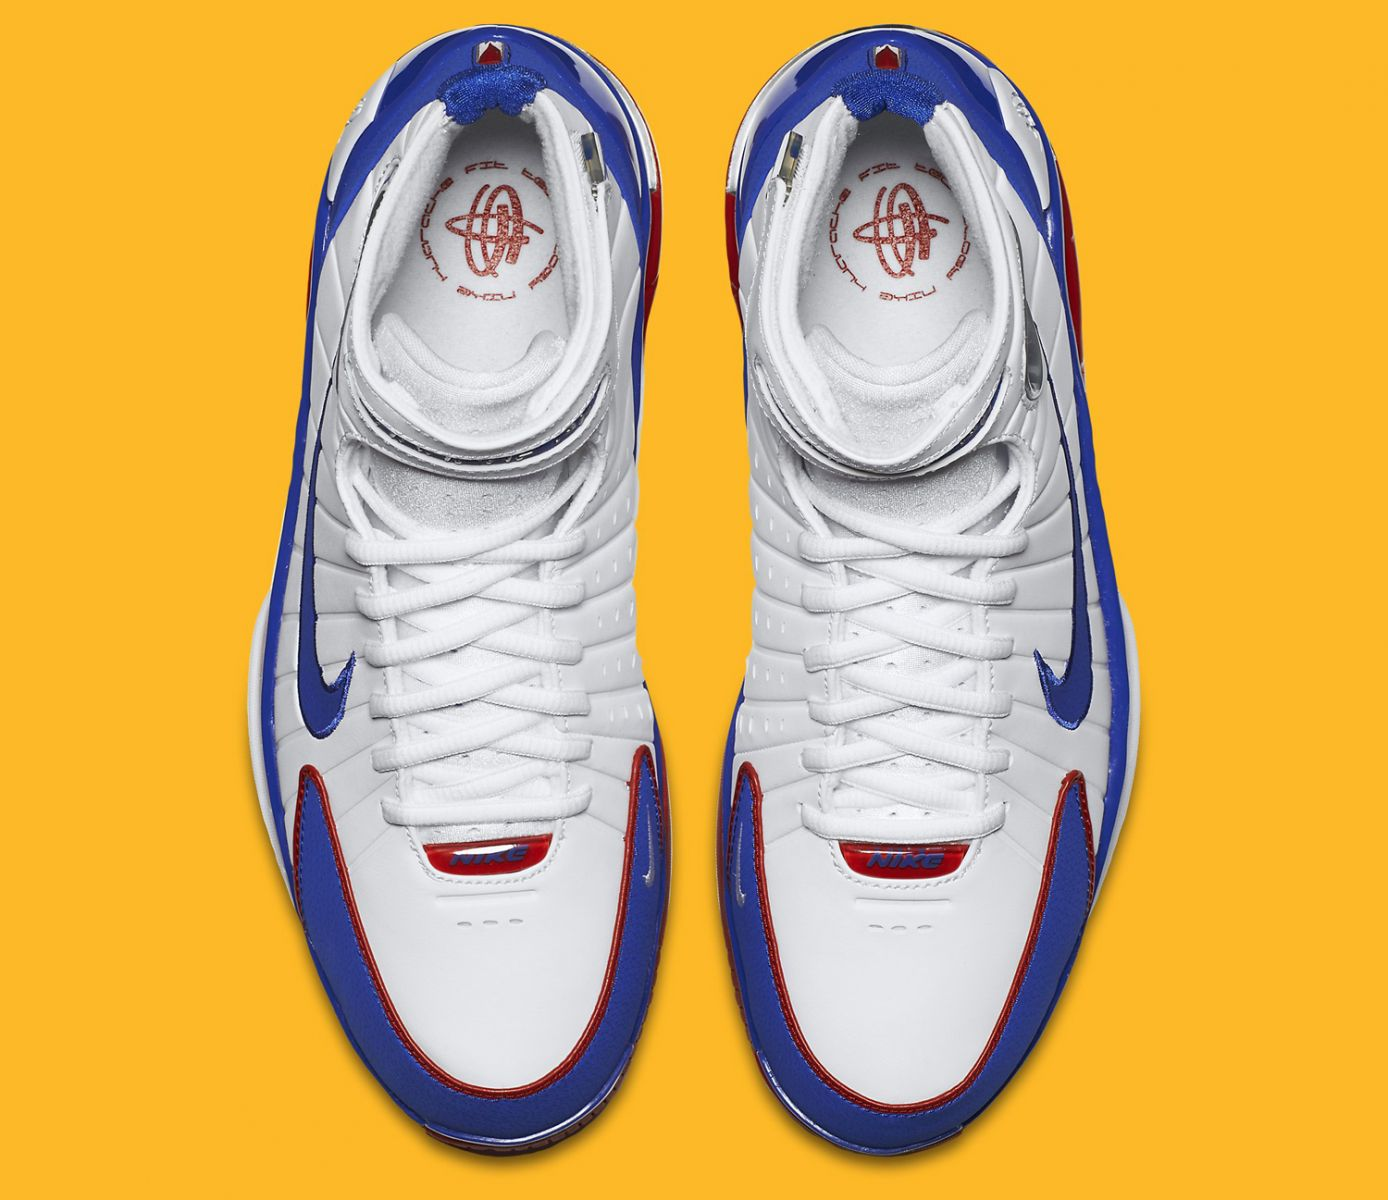 a035a99ebe96 UPDATE 1 19  Official images on this upcoming Air Zoom Huarache 2K4